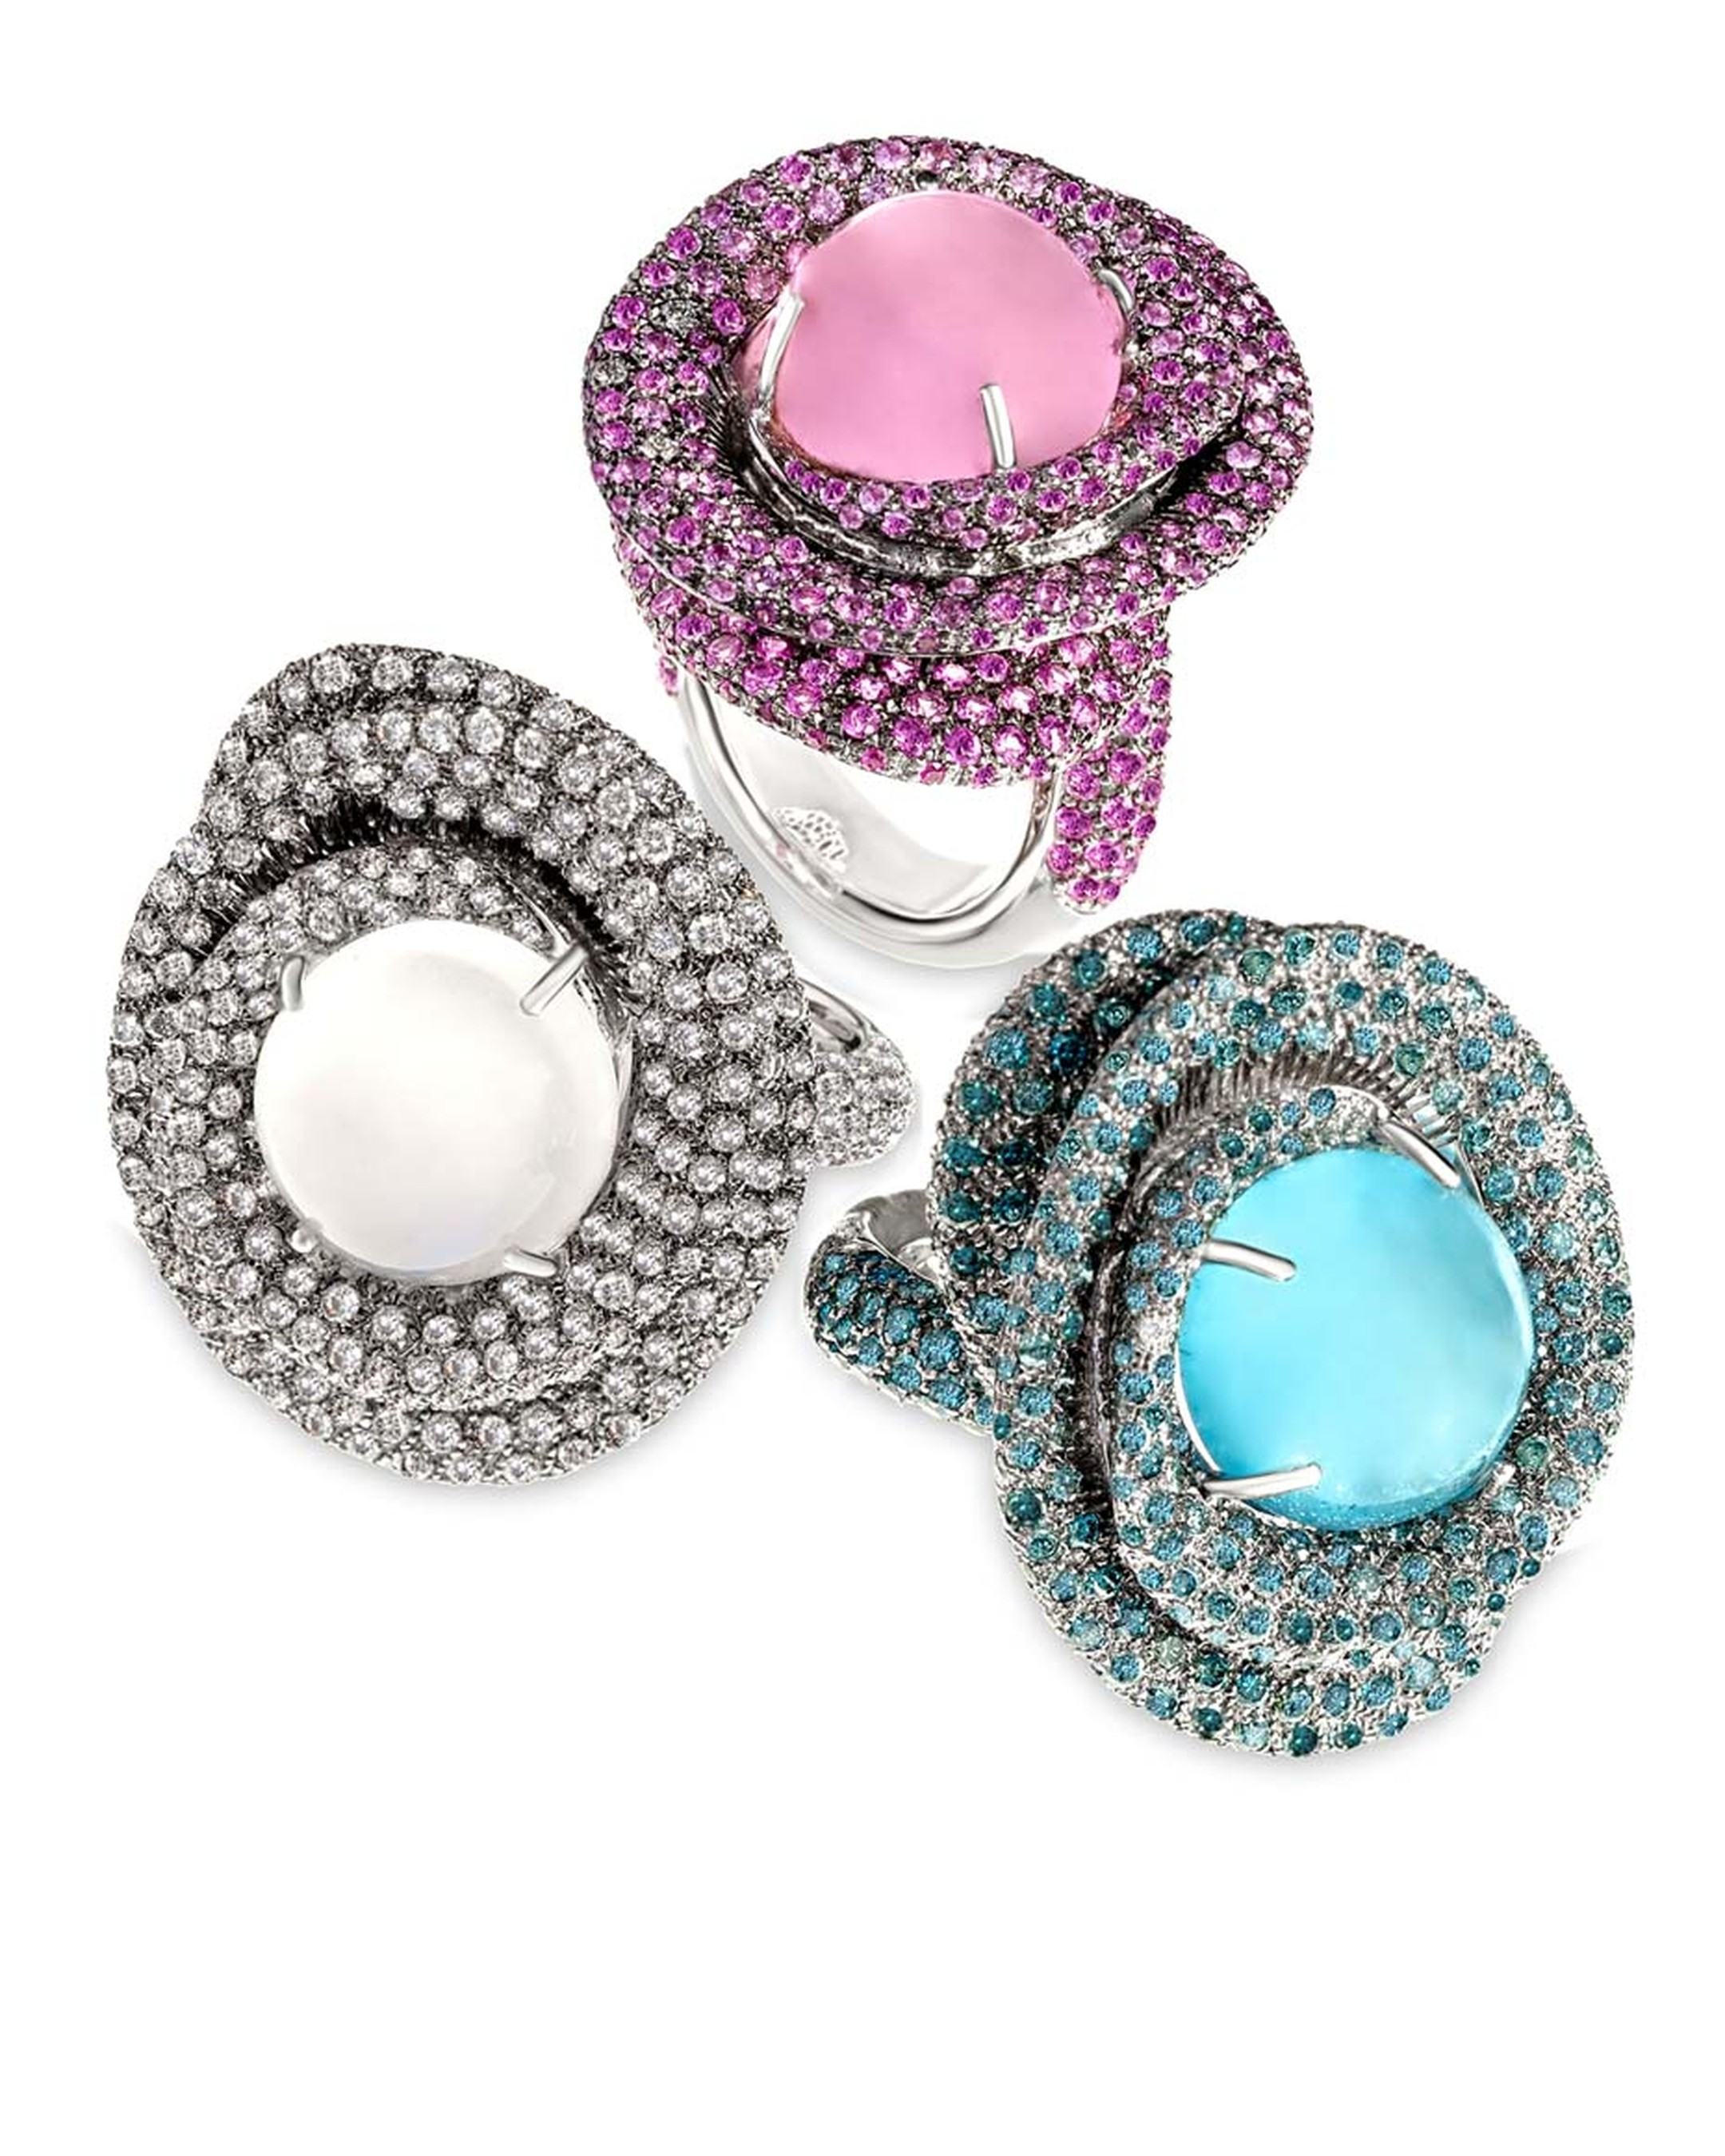 Margot McKinney Swirl Rings ($29,500 each).